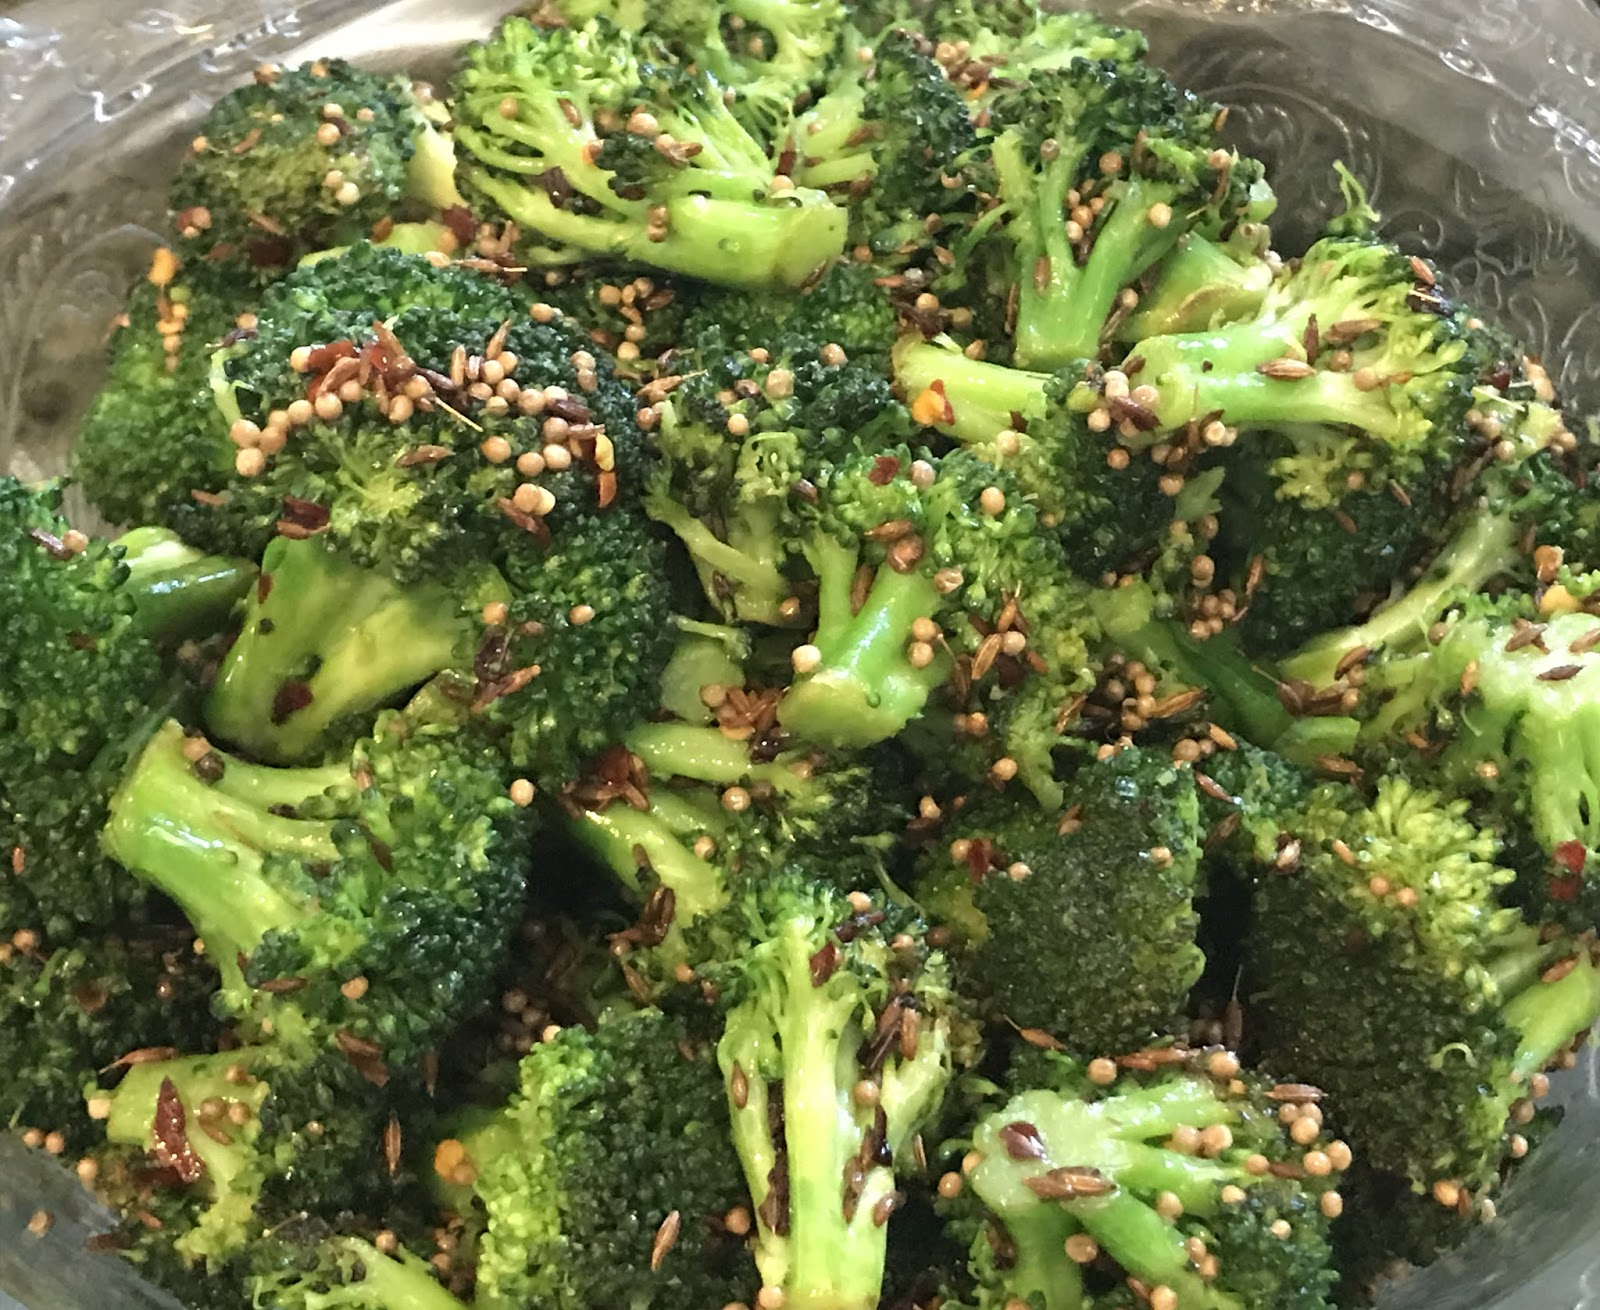 Sauteed Broccoli with Cumin and Mustard Seeds